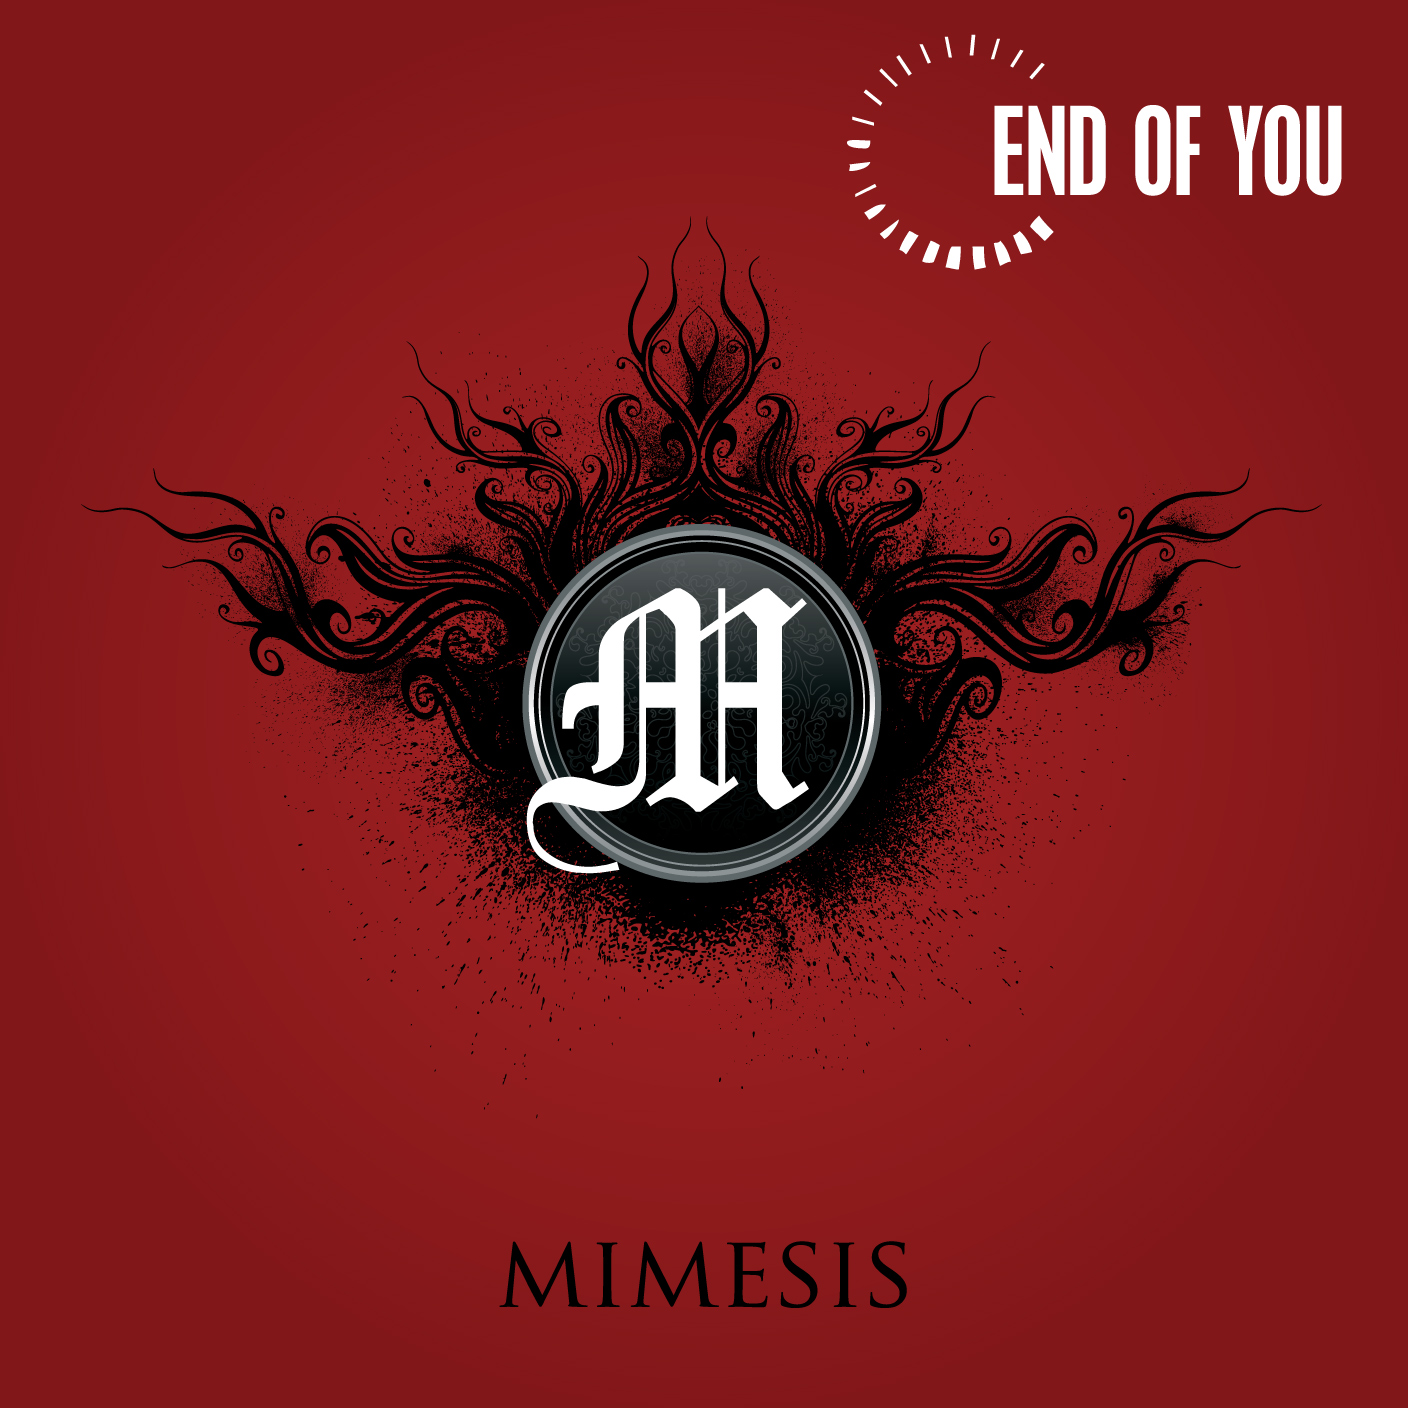 End of You - Mimesis - Album cover